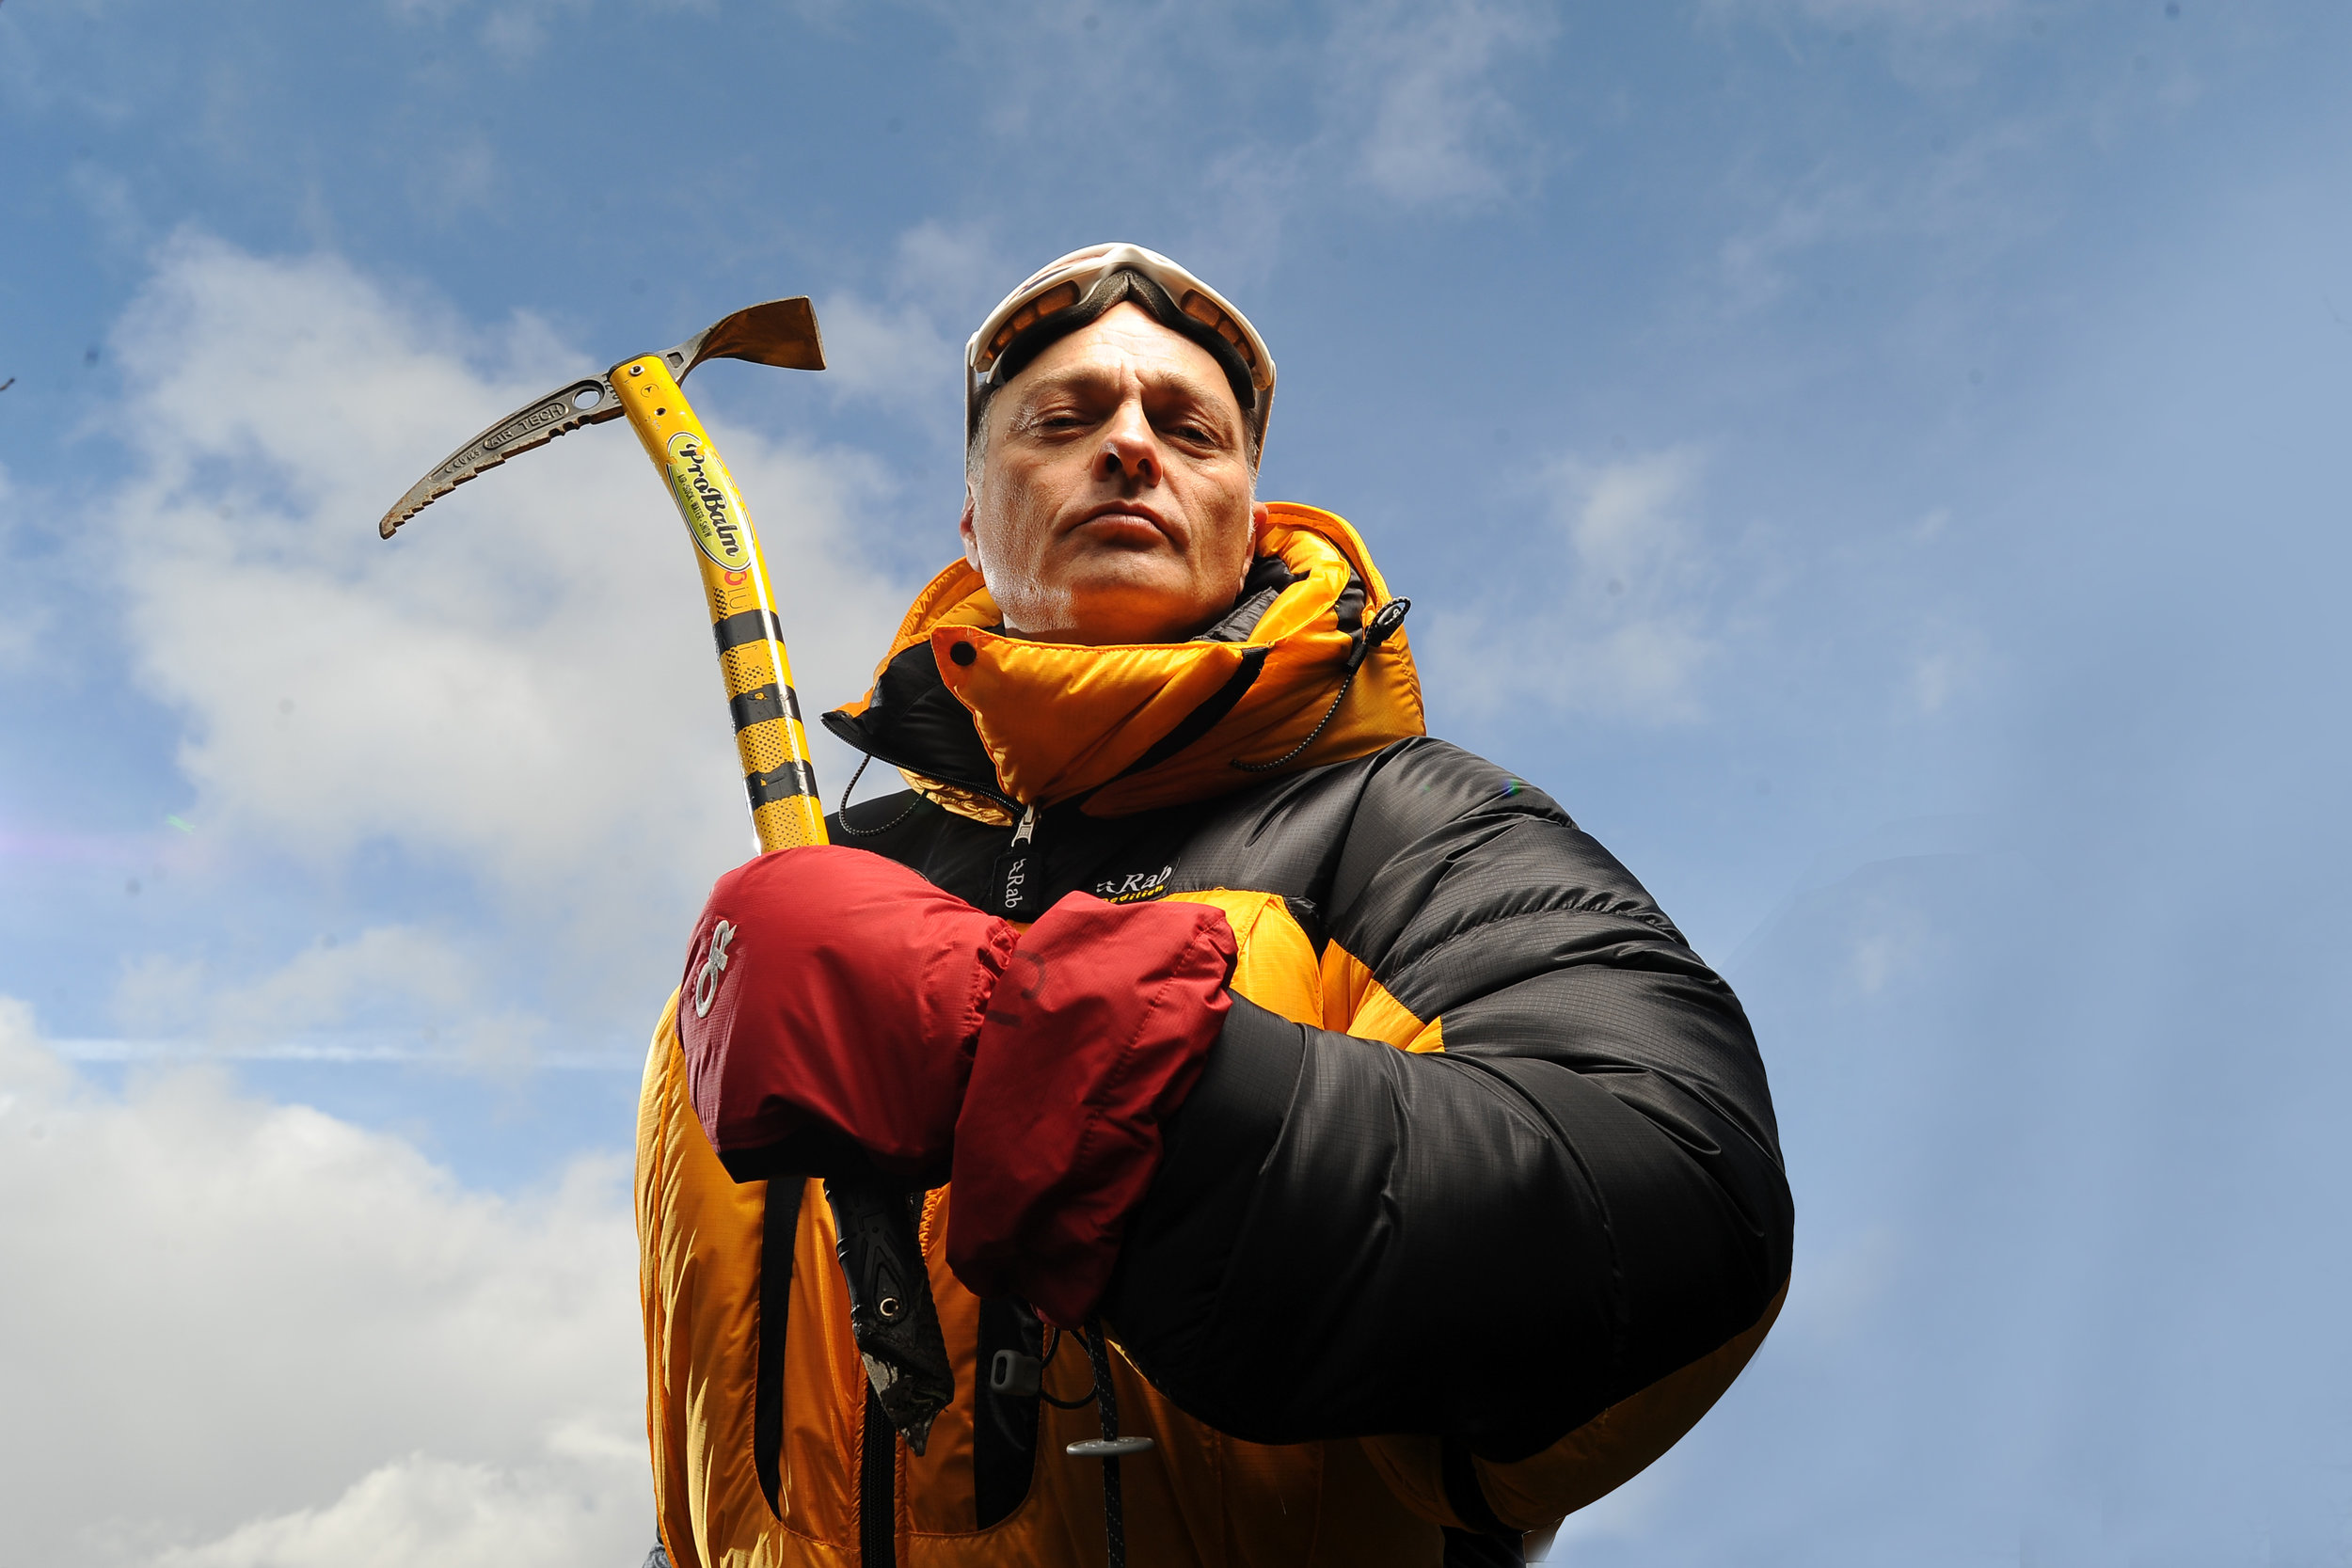 010213